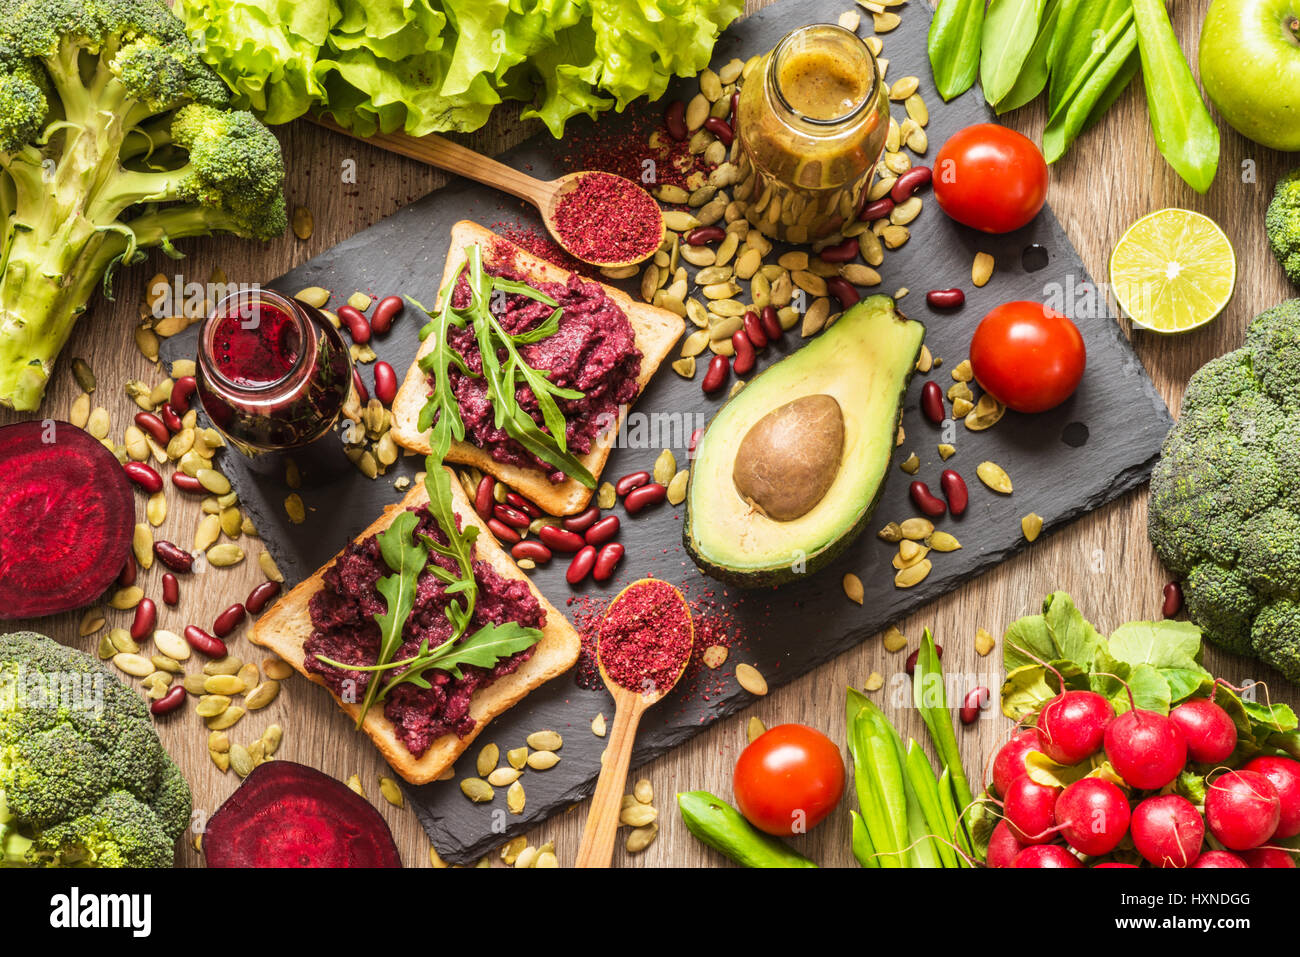 Healthy vegan food. Sandwiches and fresh vegetables on wooden background. Detox diet. Different colorful fresh juices - Stock Image